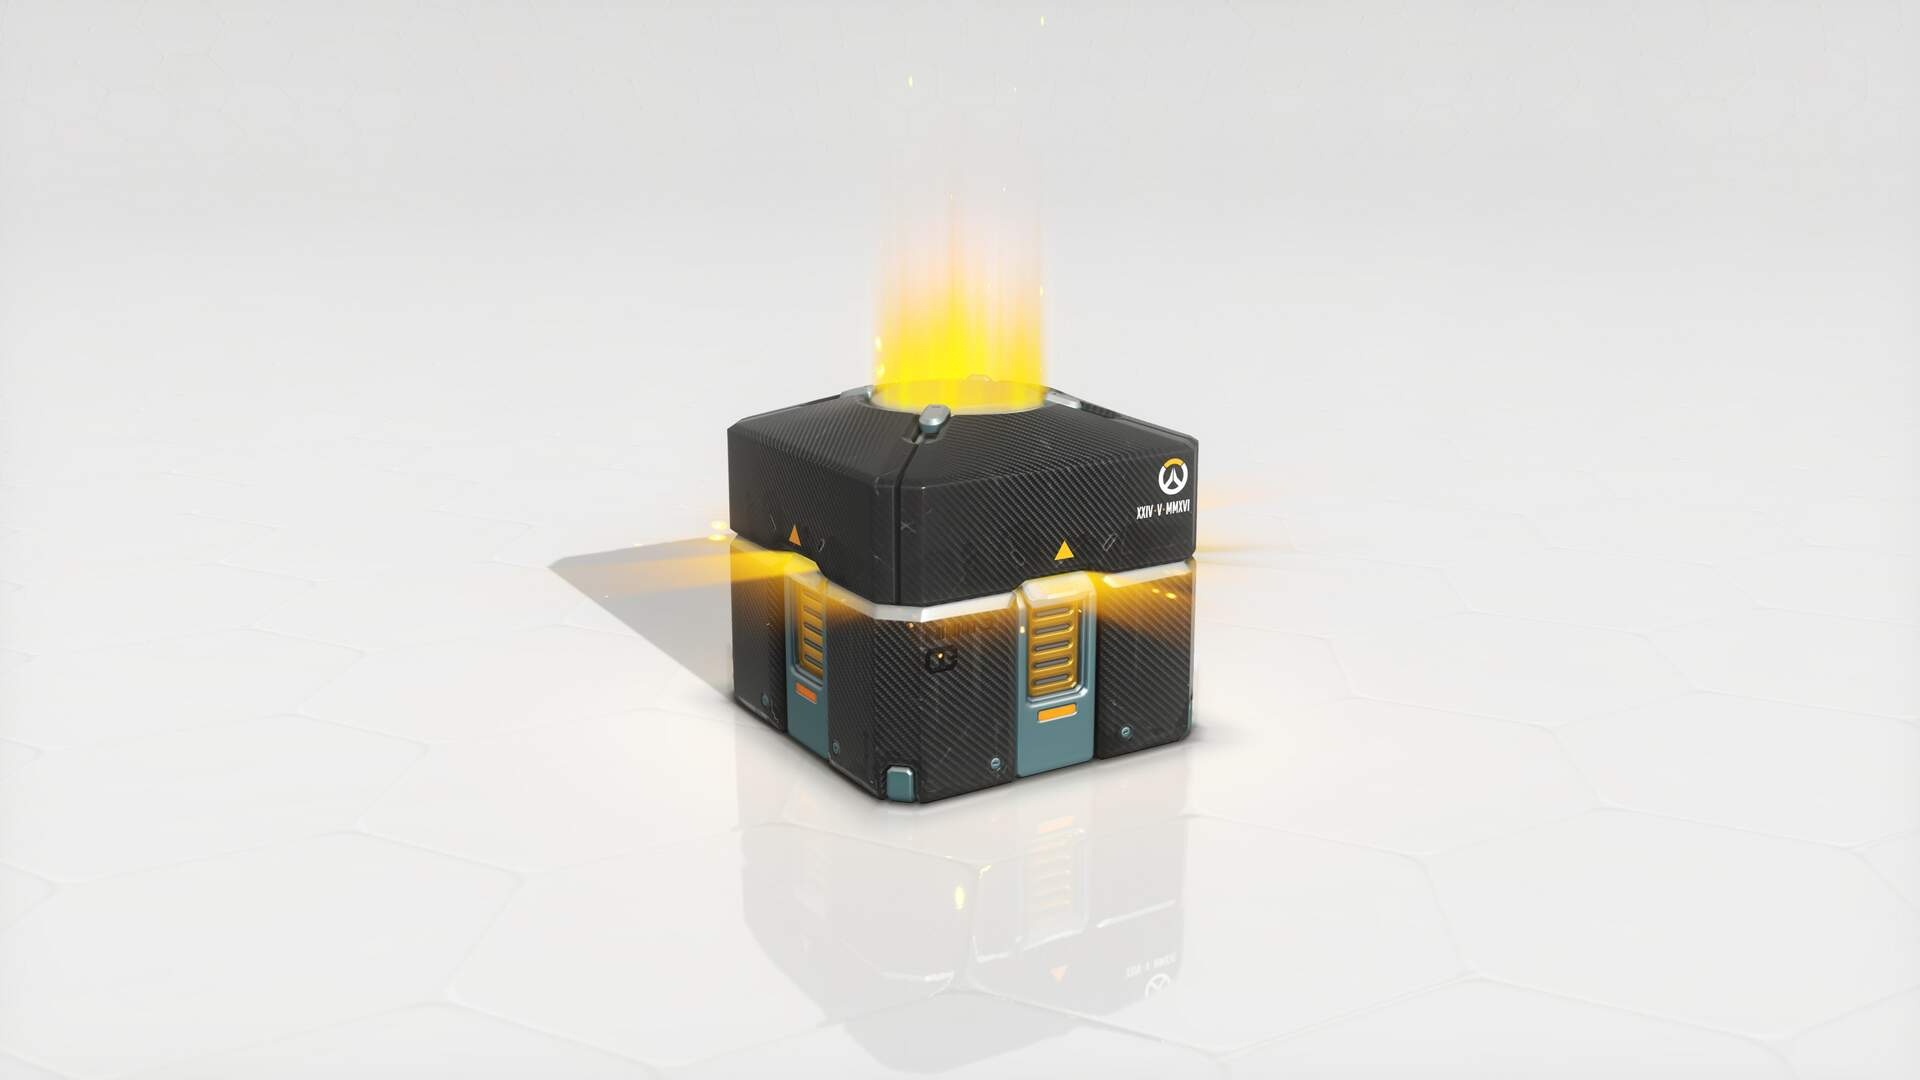 Belgium Finds Loot Boxes in Overwatch, FIFA 18 Illegal and Punishable with Jail Time